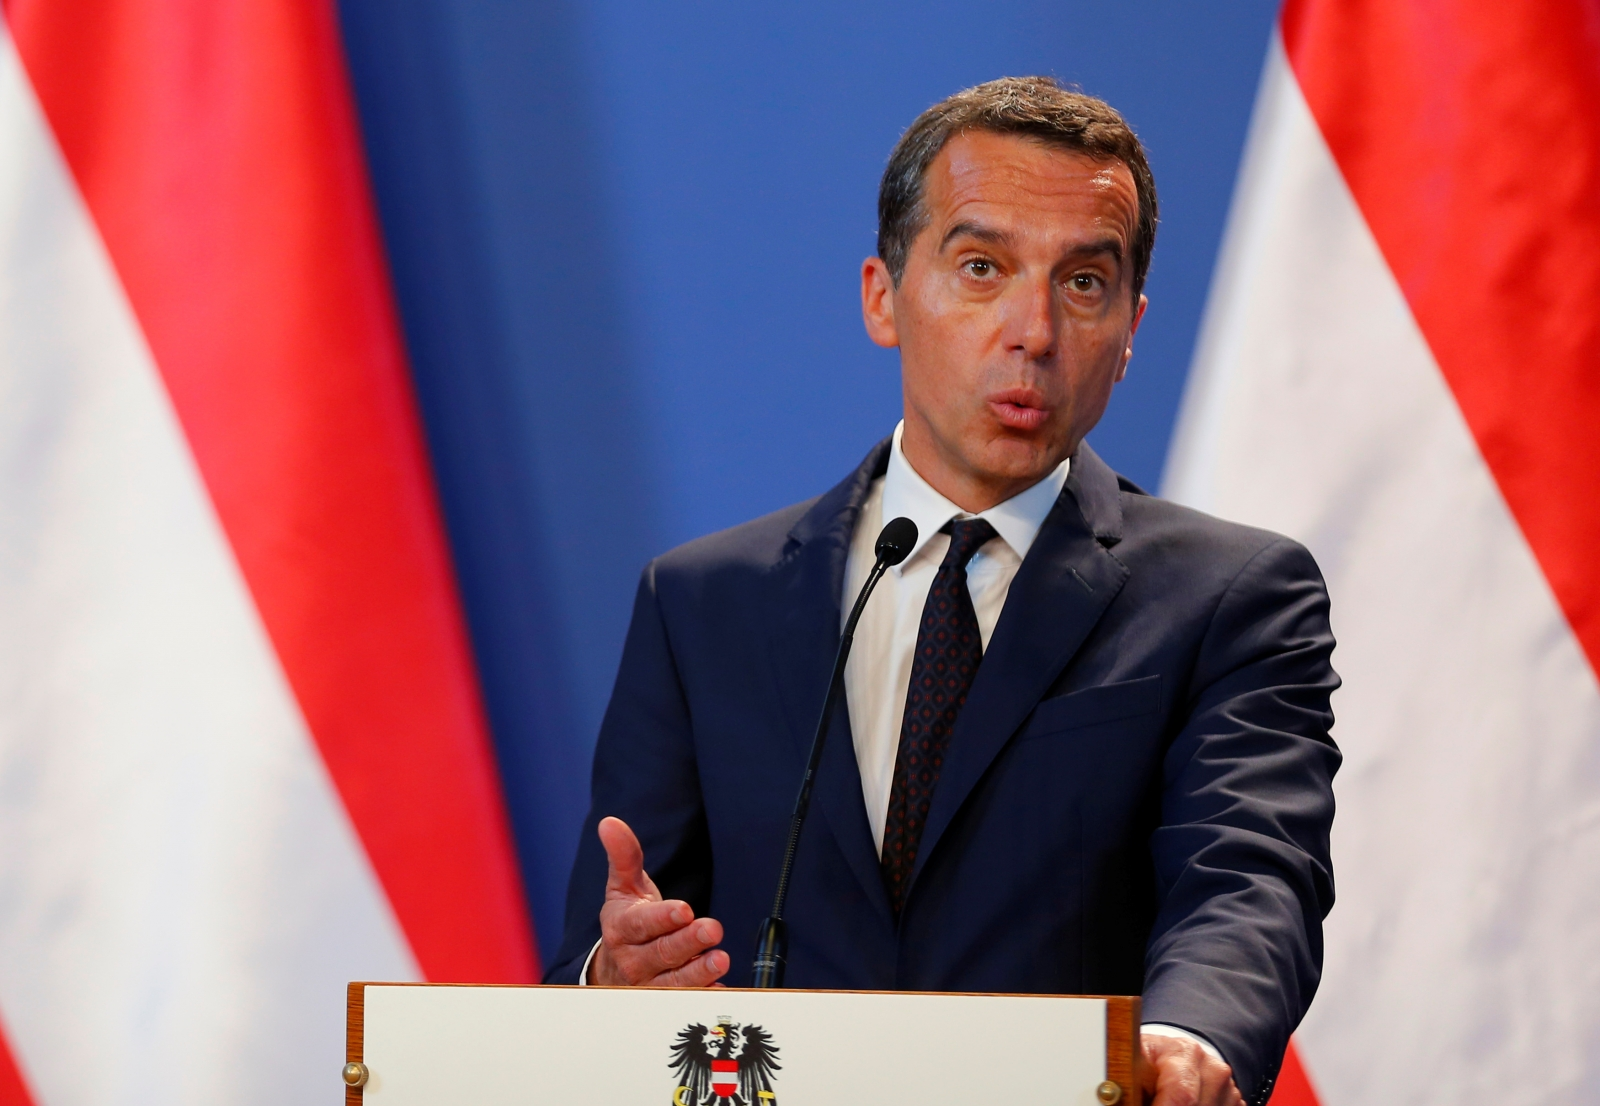 Multinationals like Starbucks and Amazon 'pay less tax than a sausage stand', Chancellor of Austria says